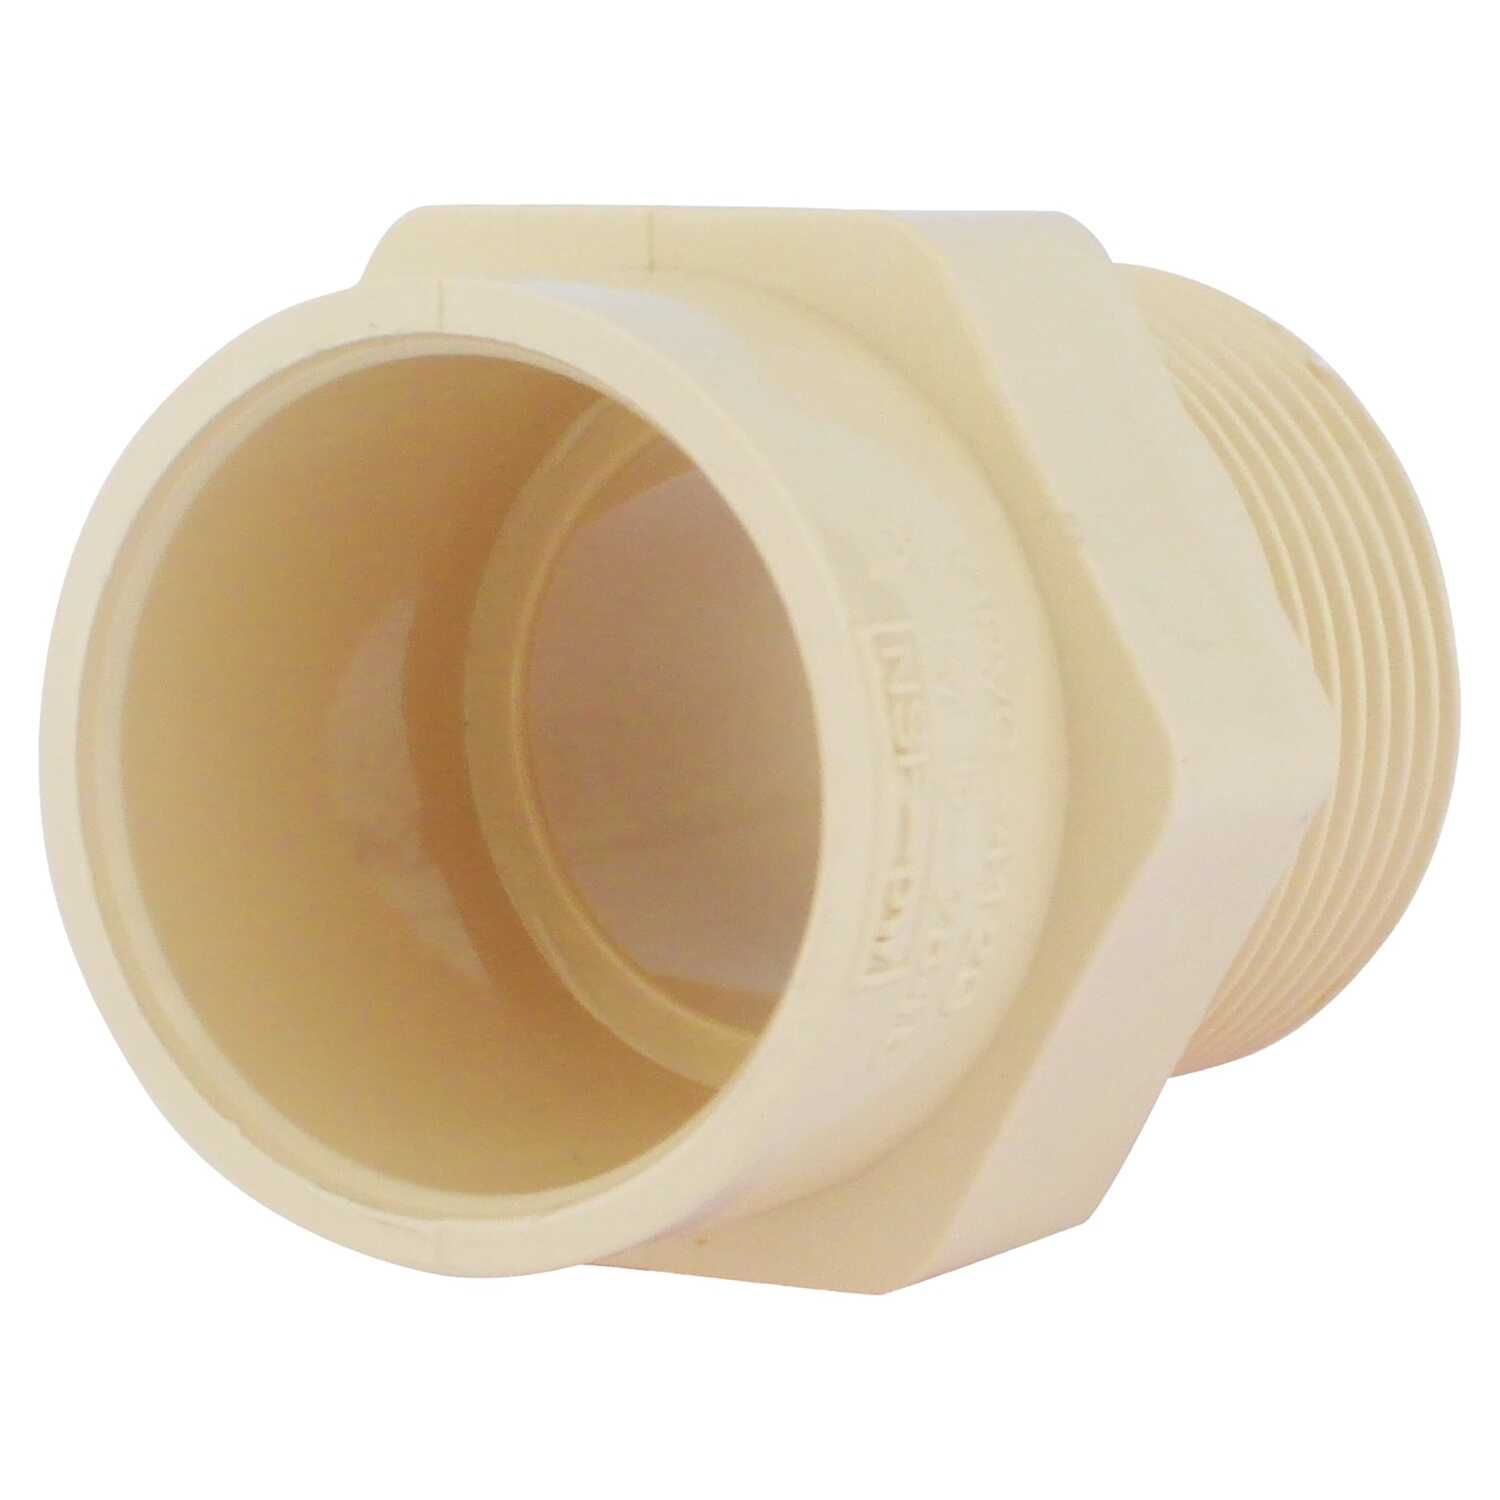 KBI  3/4 in. Hub   x 1/2 in. Dia. MIPT  Reducer Male Adapter